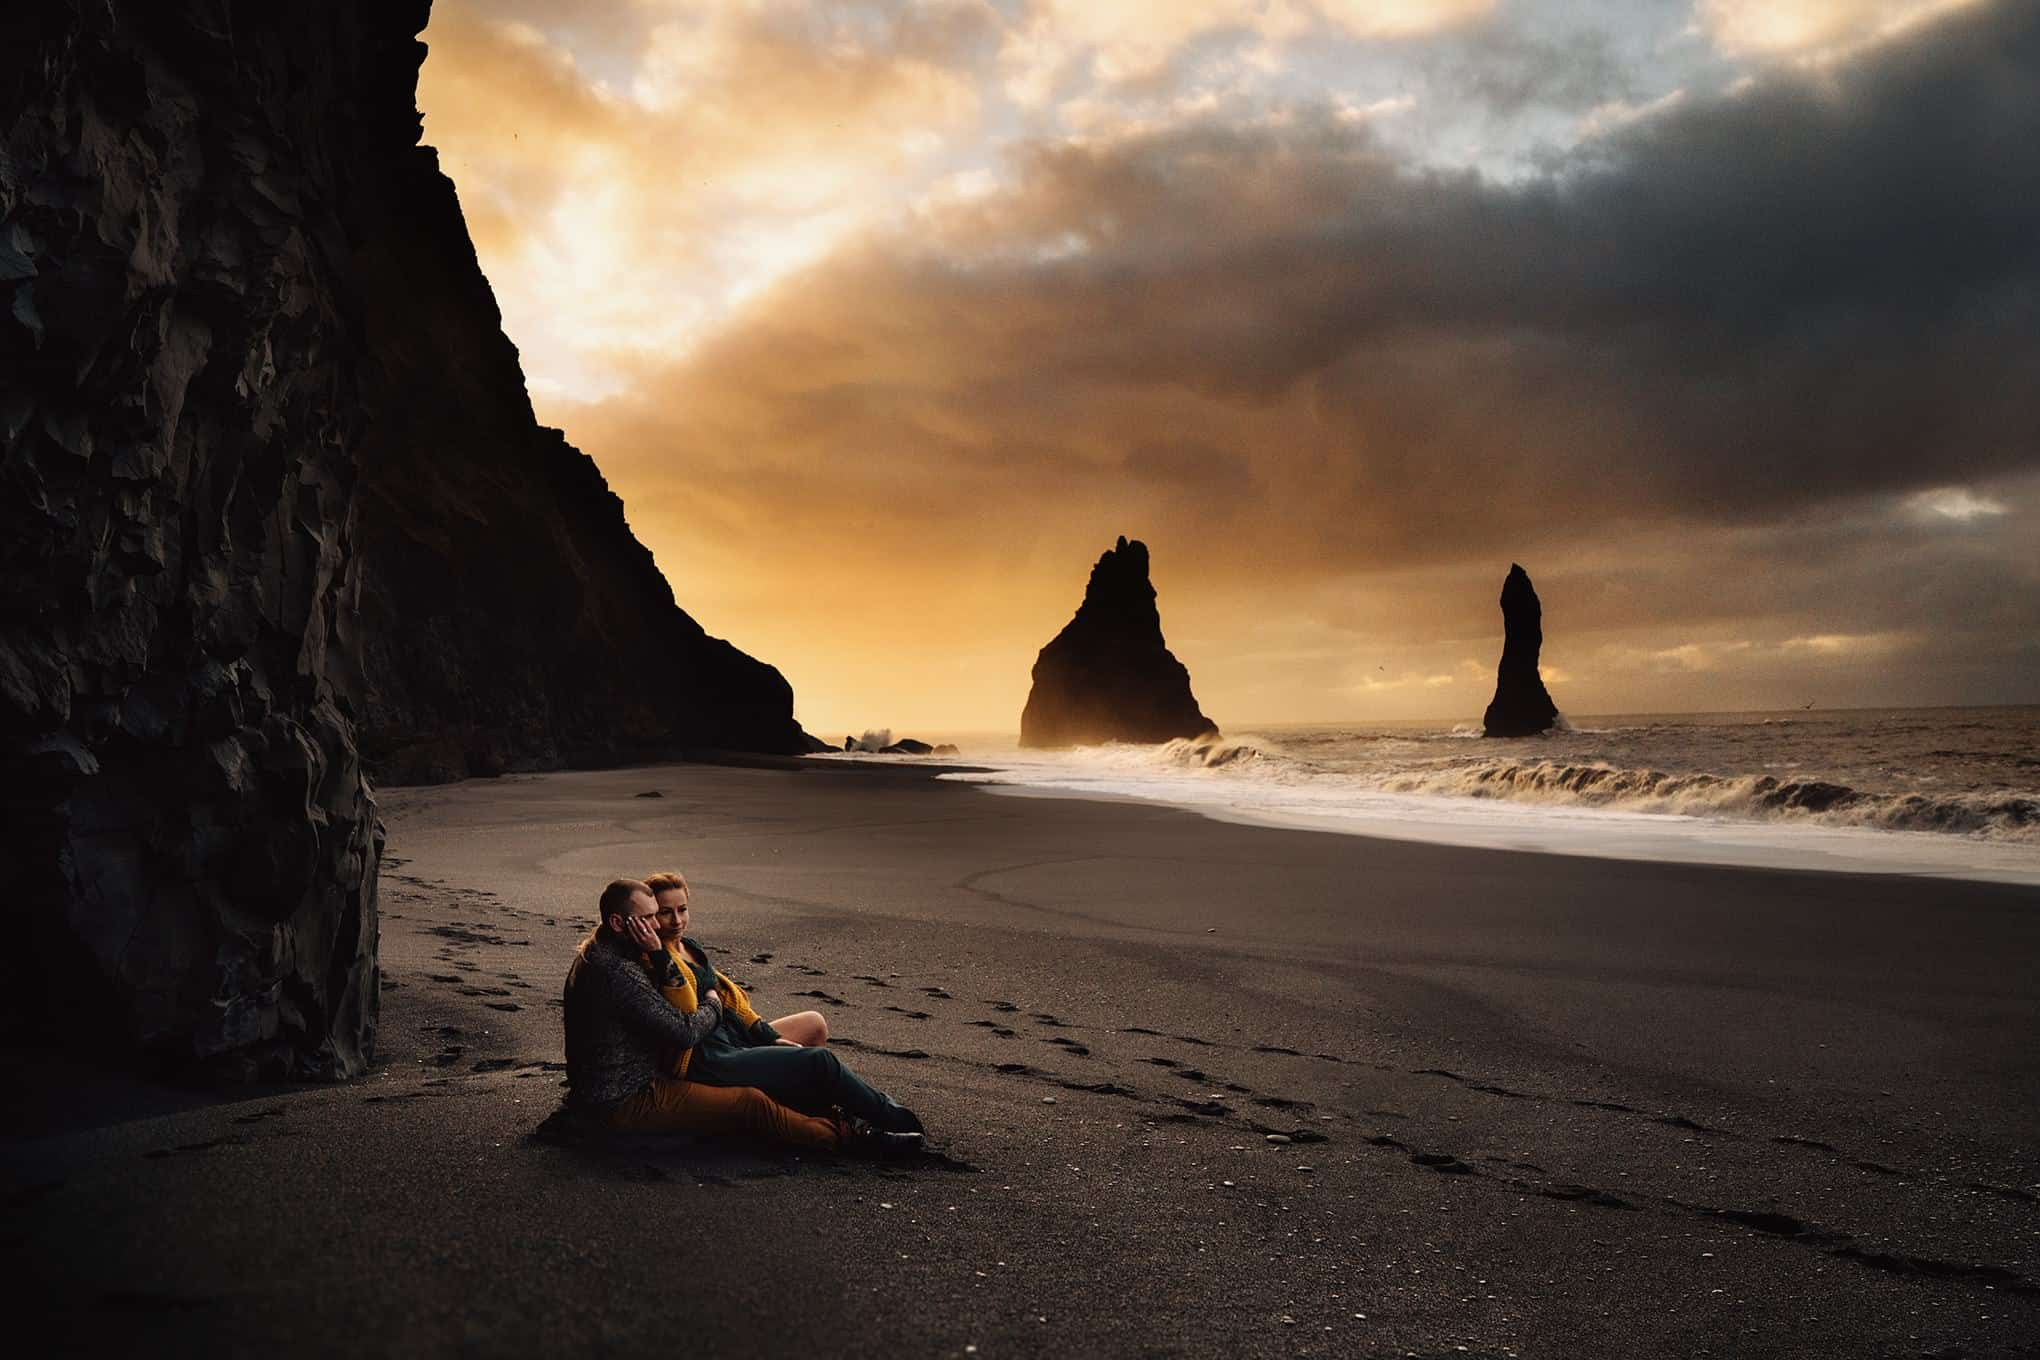 An intimate shot of a couple sitting on the black sand beach at sunrise